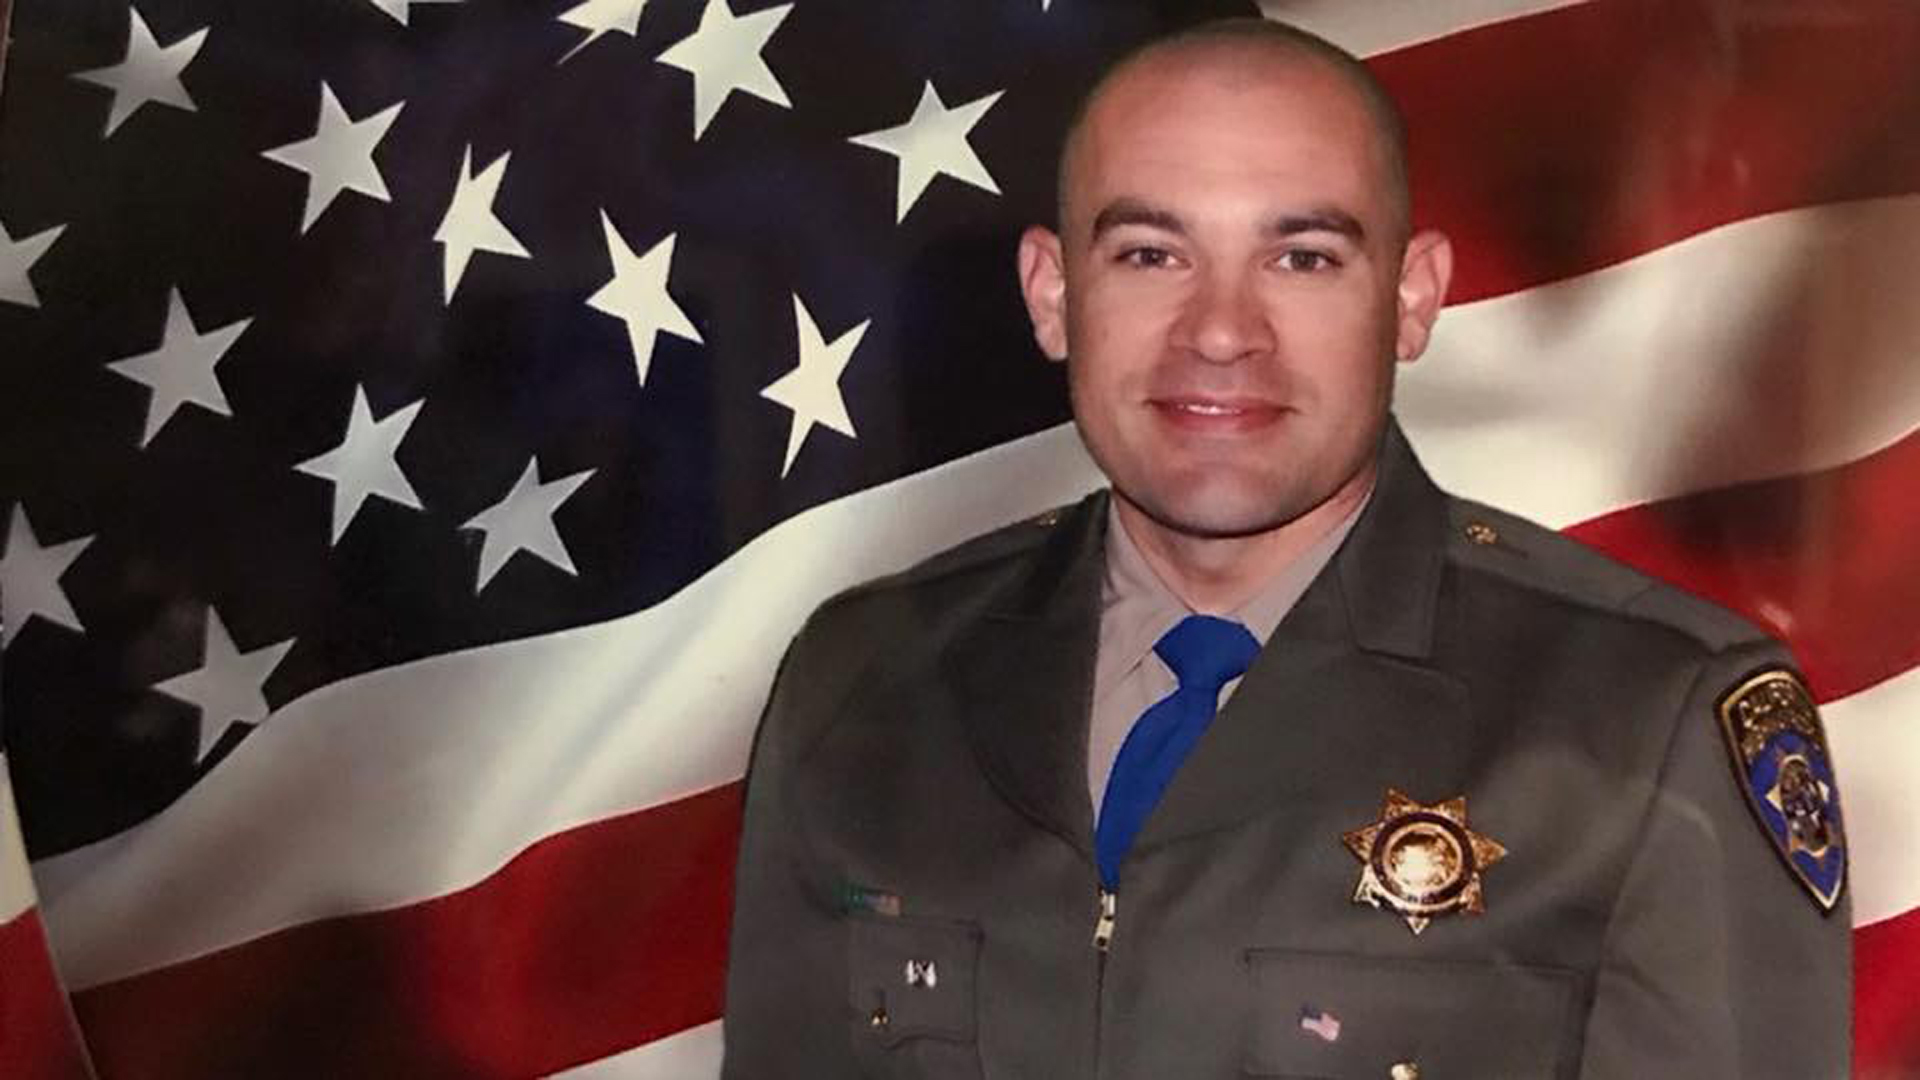 CHP released this photo of Officer Andrew Camilleri Sr.